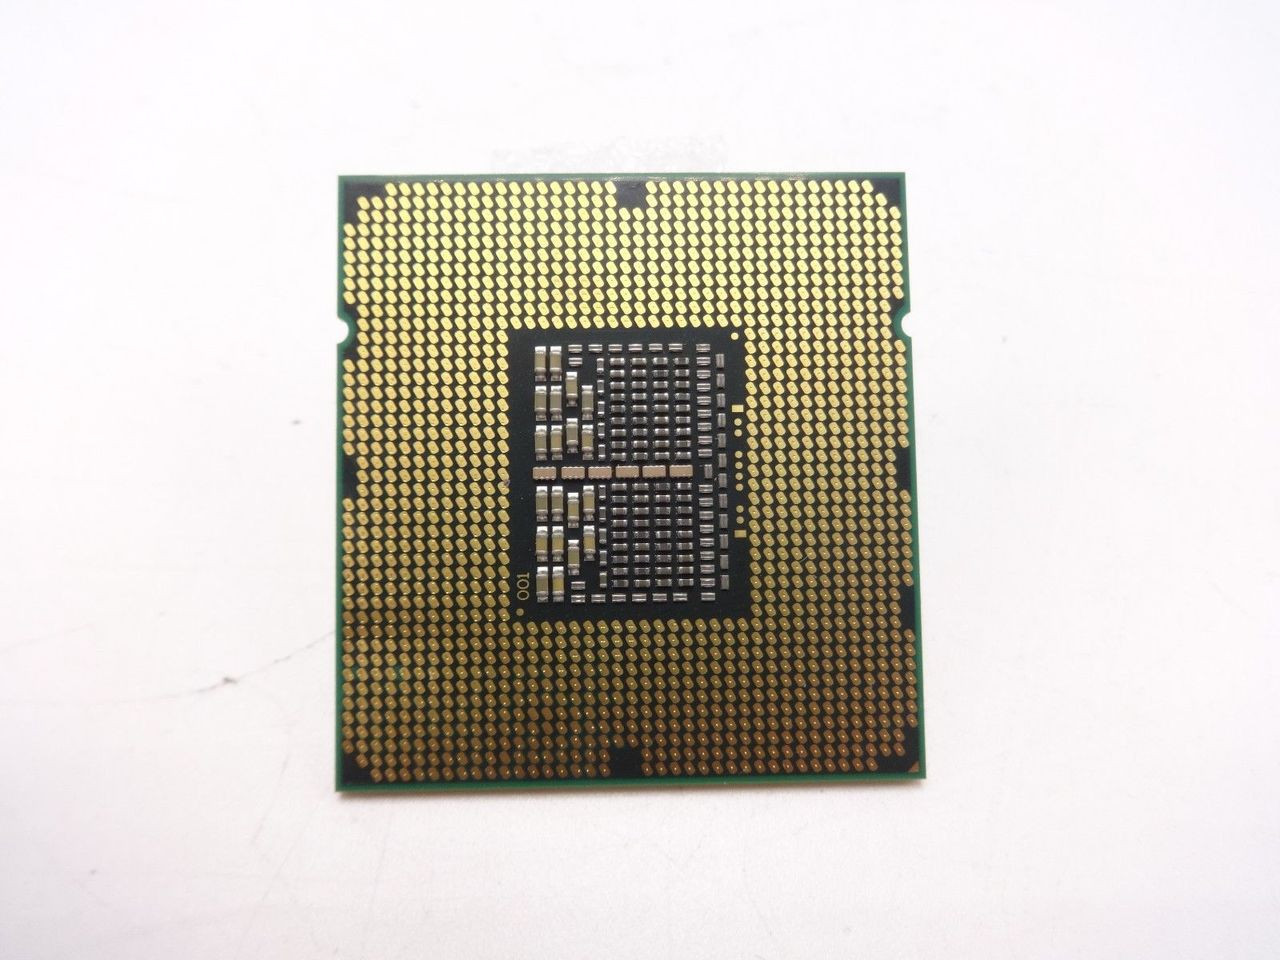 Intel SLBEY XEON 3.06/8MB/4.8GT/s LGA1366 W3550 Quad Core cpu T0F1F